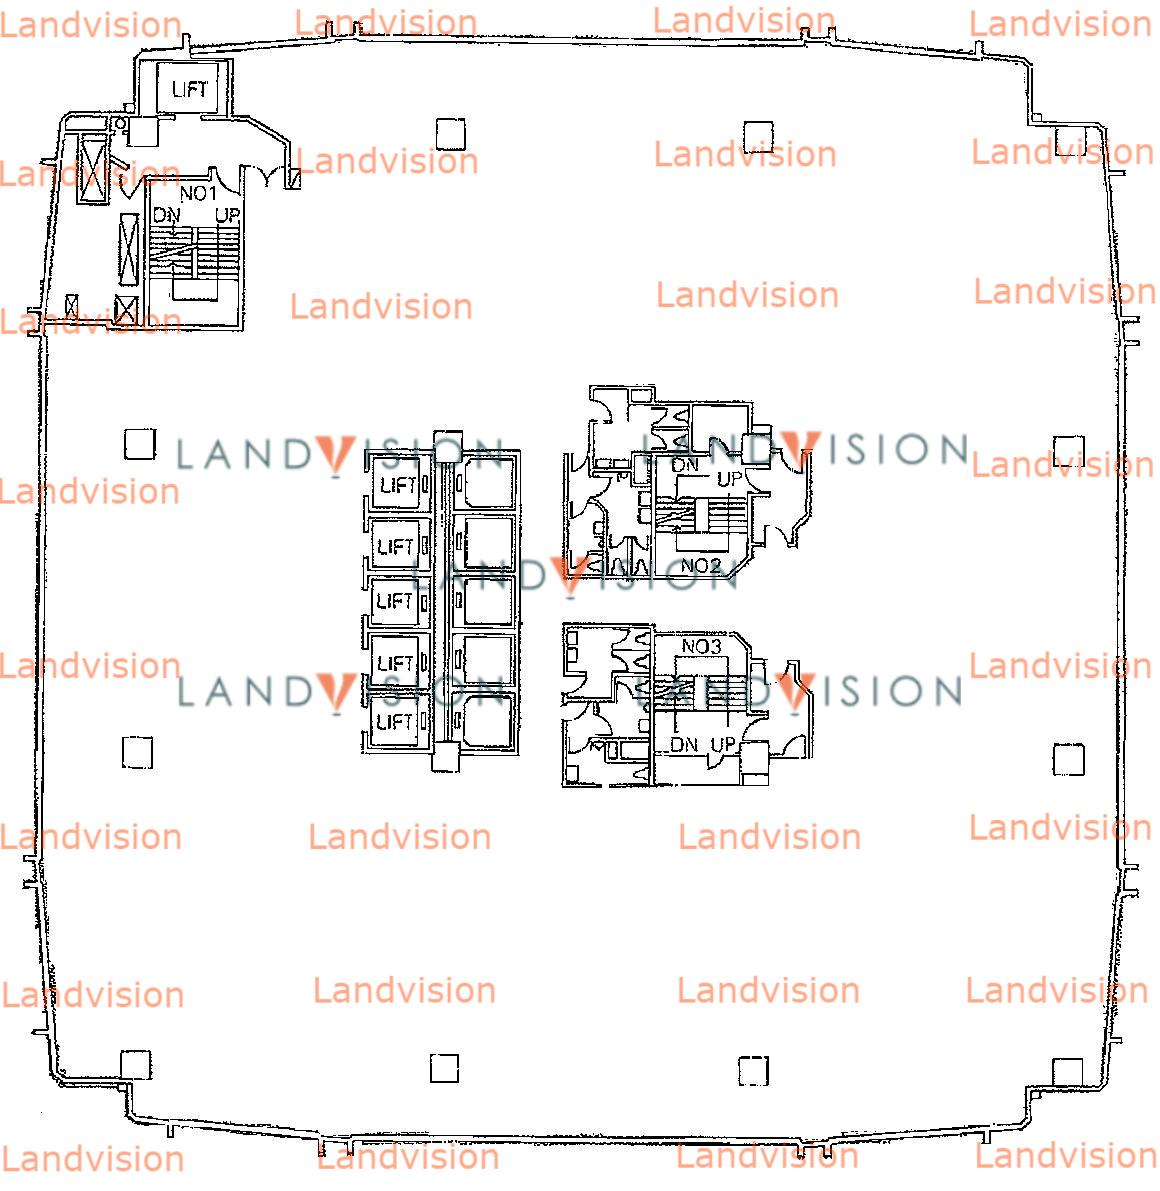 https://www.landvision.com.hk/wp-content/uploads/website/resize/floorplans/000318.JPG